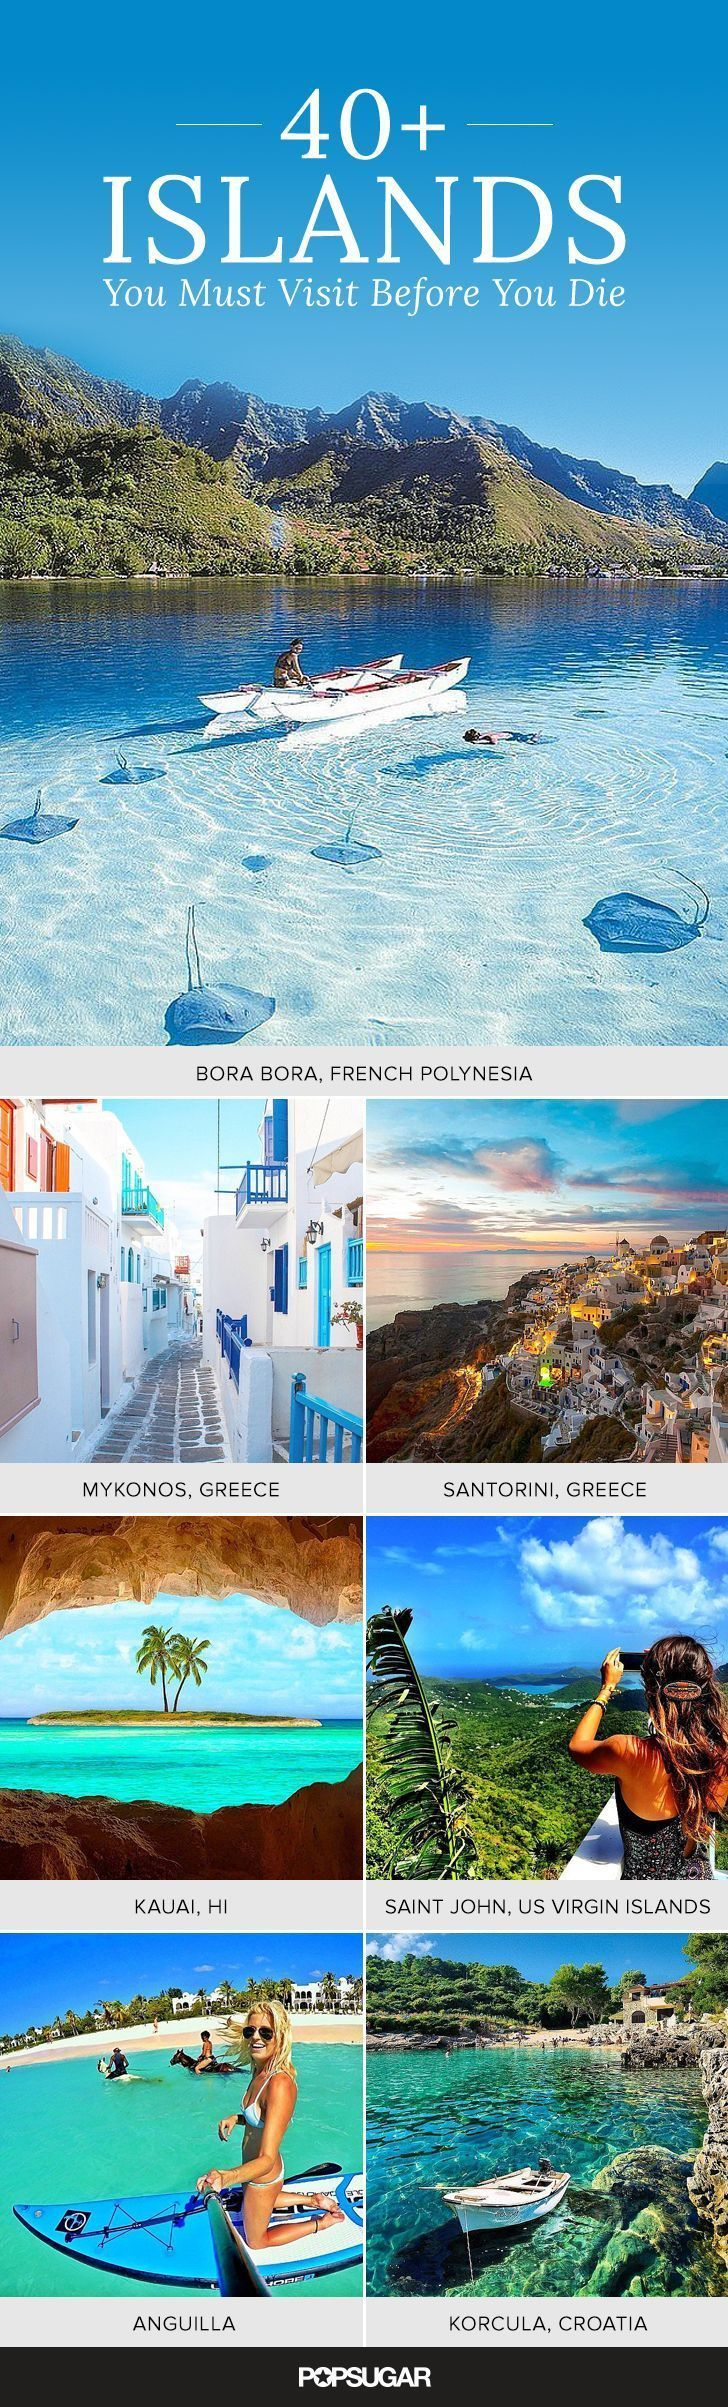 Beautiful Holidays To Santorini Ideas On Pinterest Travel - 10 things to see and do on your trip to santorini greece